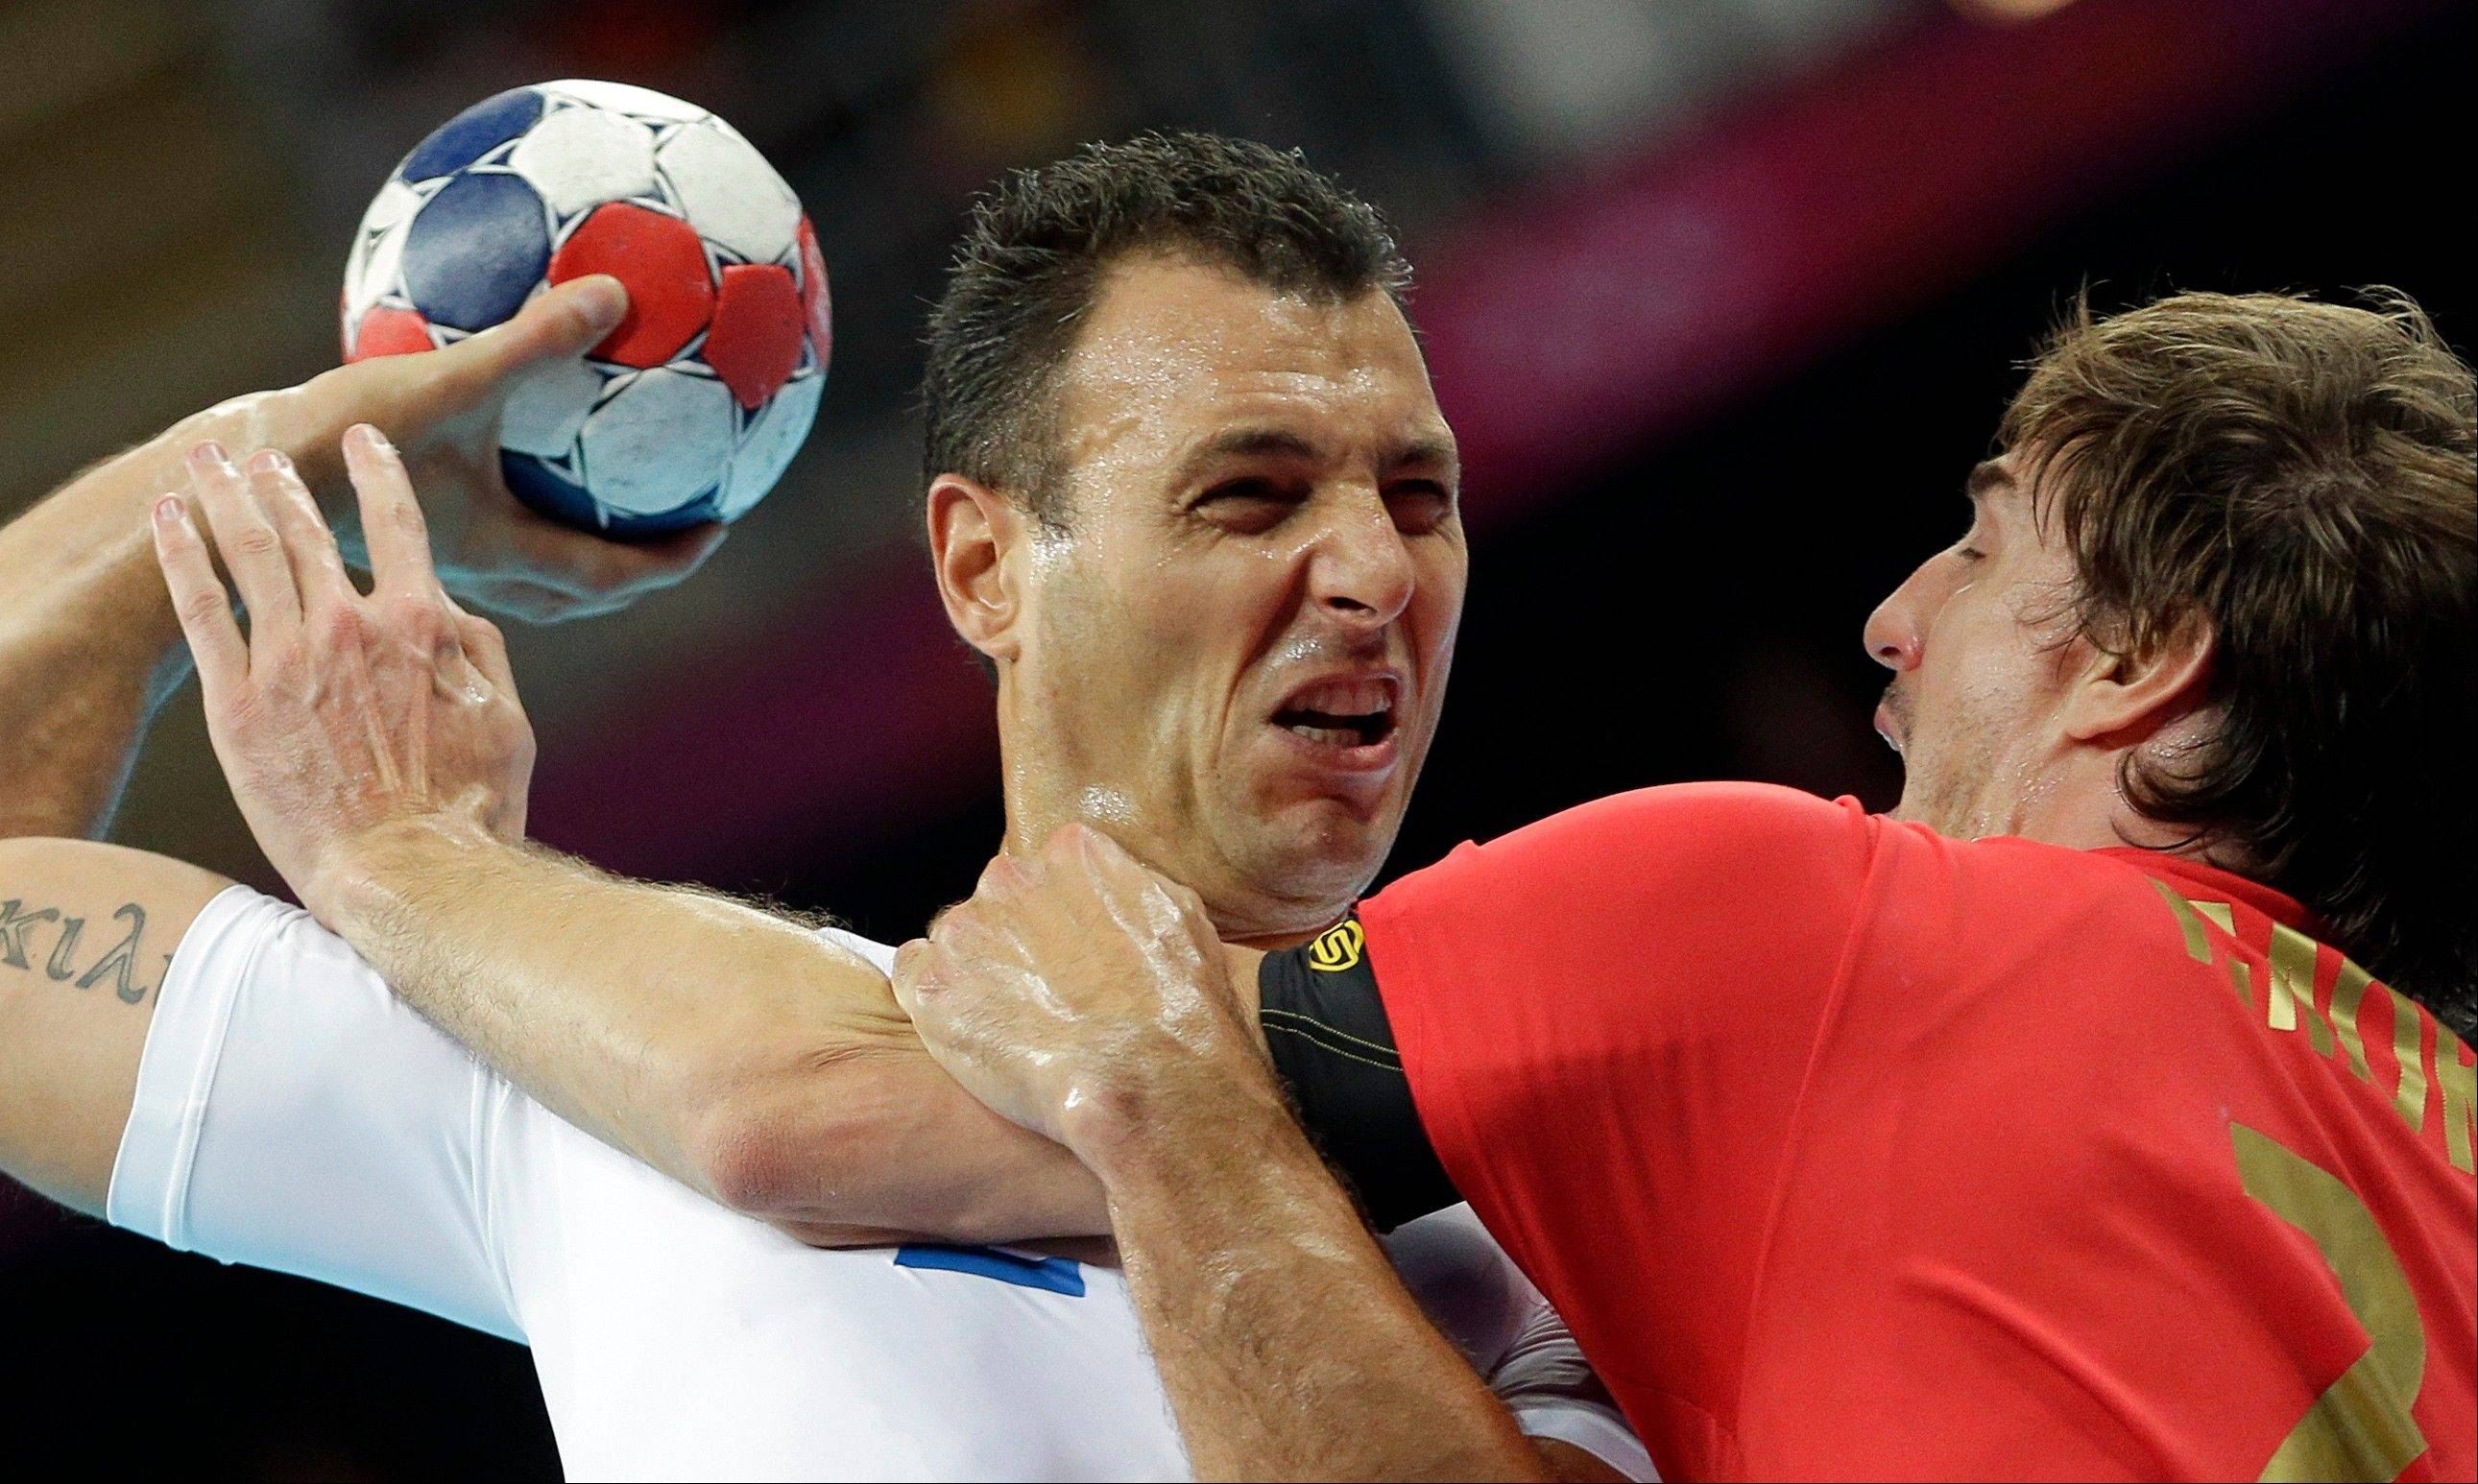 Spain's Viran Morros de Argila, right, and France's Jerome Fernandez challenge during their men's handball quarterfinal match at the 2012 Summer Olympics, Wednesday, Aug. 8, 2012, in London.